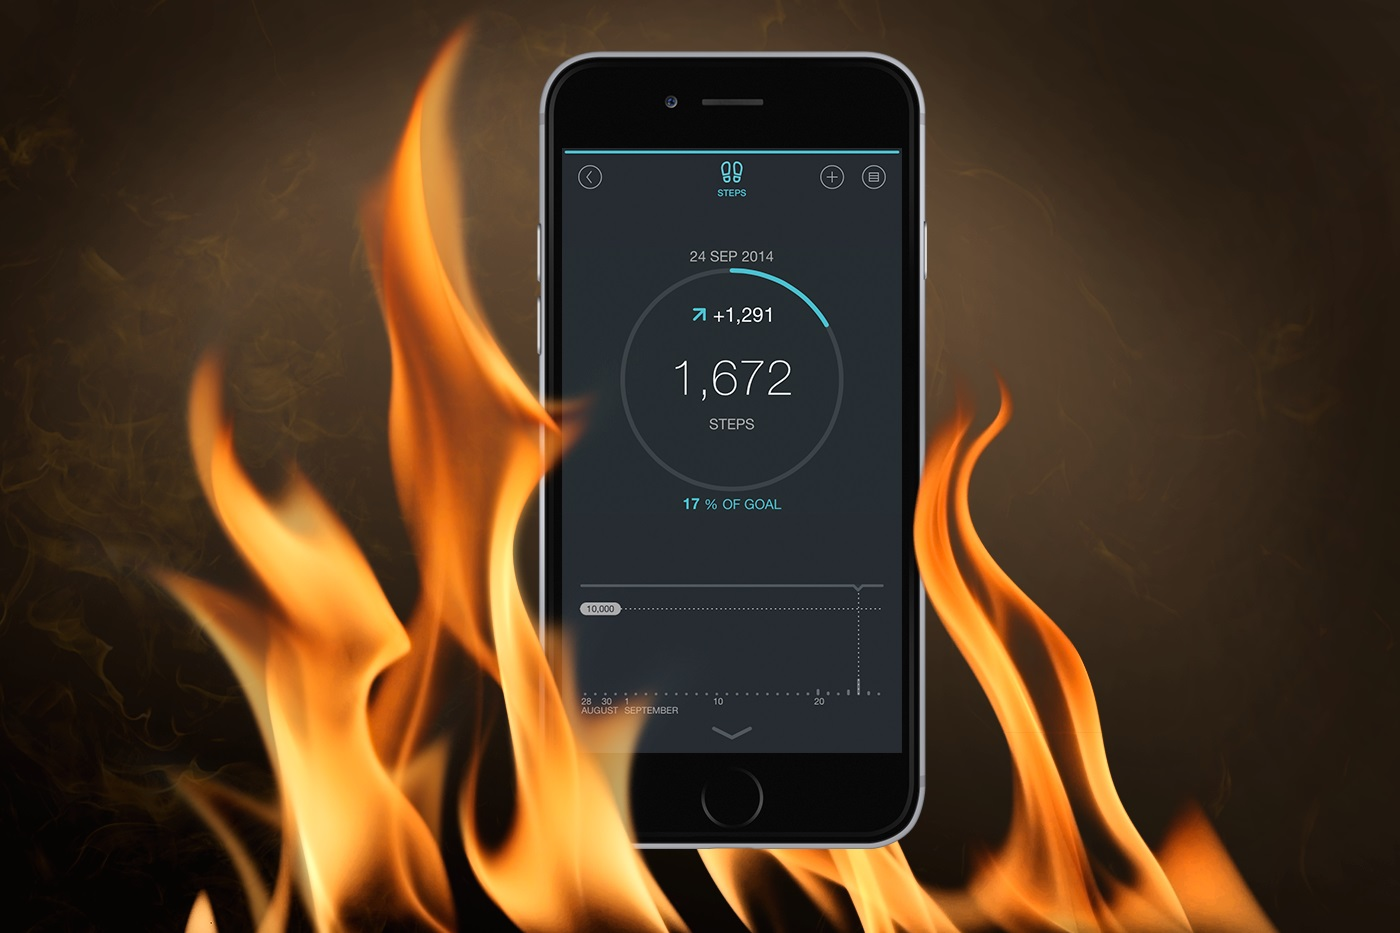 What is causing your smartphone to overheat?